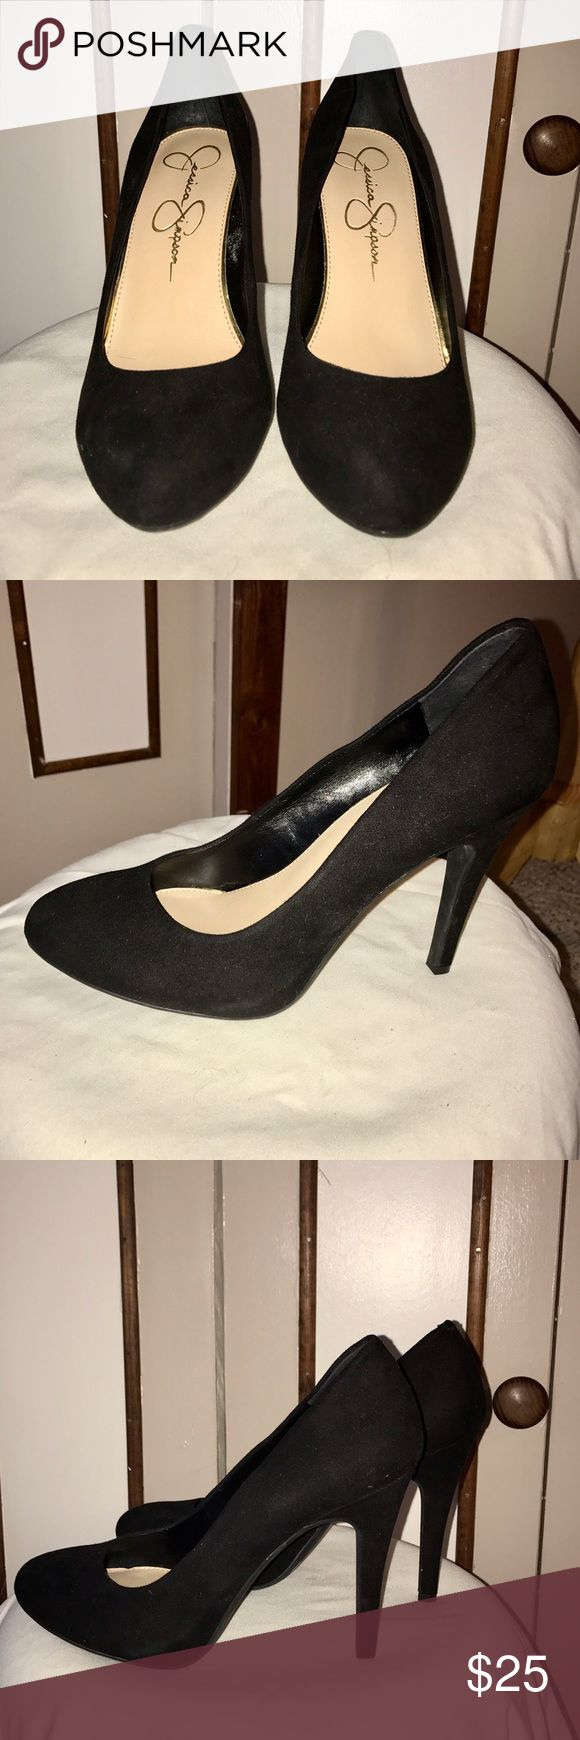 """Jessica Simpson Black Pumps. 4"""" Heel. Like New! Jessica Simpson Black Pumps. 4"""" Heel. Like New! No sign of Wear on shoes. The bottoms look like they have Wear but it's the material. Shoe is suede Jessica Simpson Shoes Heels"""